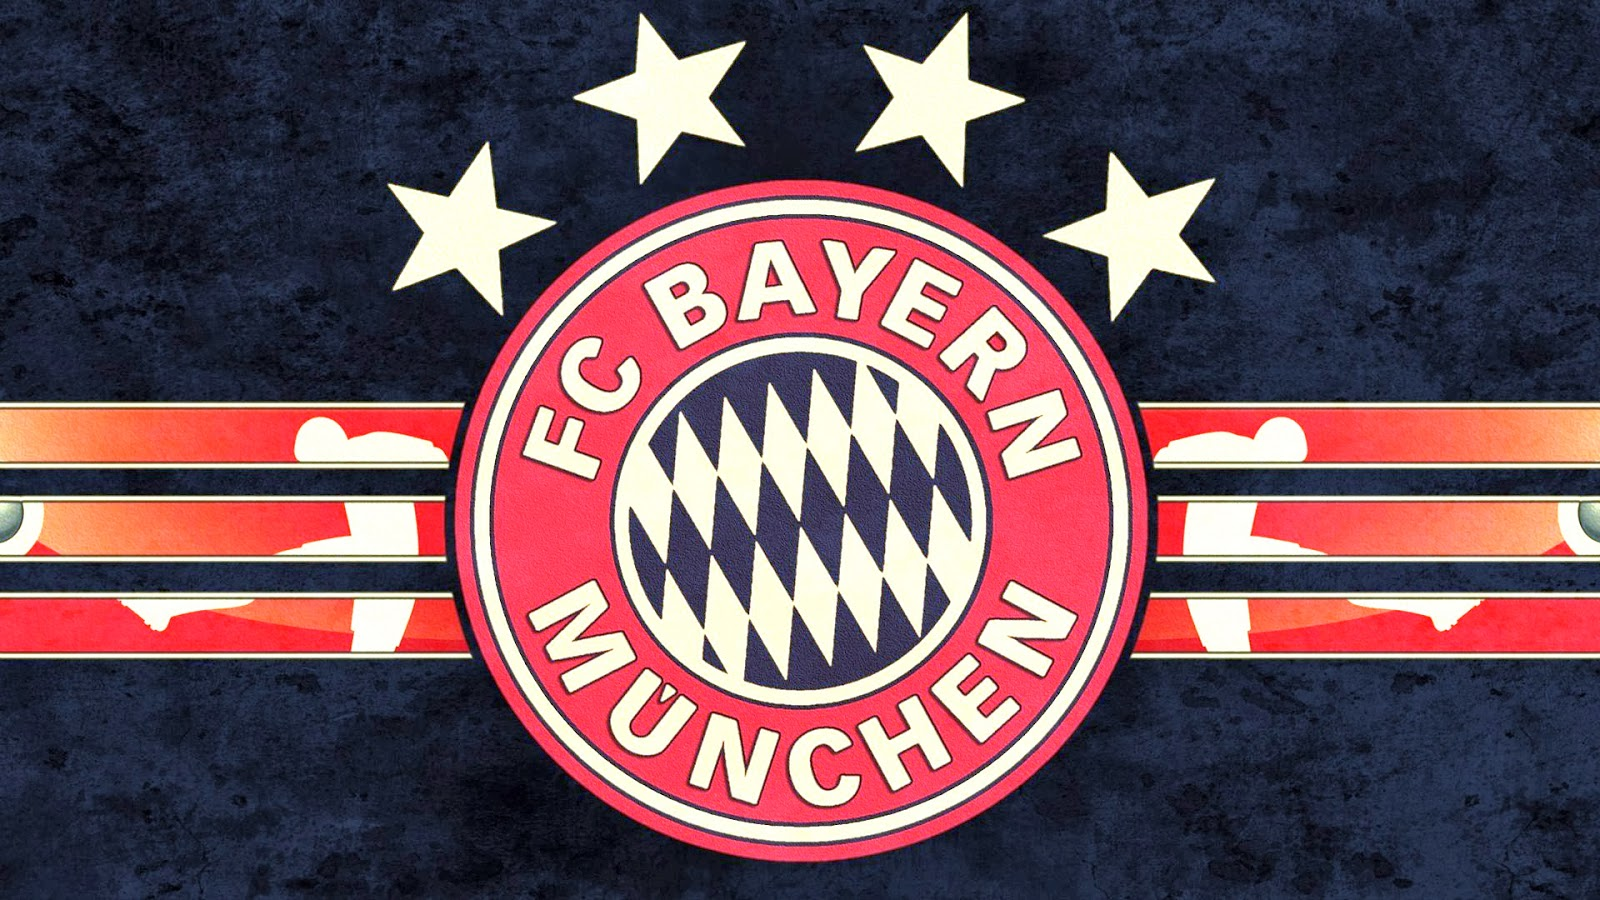 Bayern Munich Wallpaper 2015 10